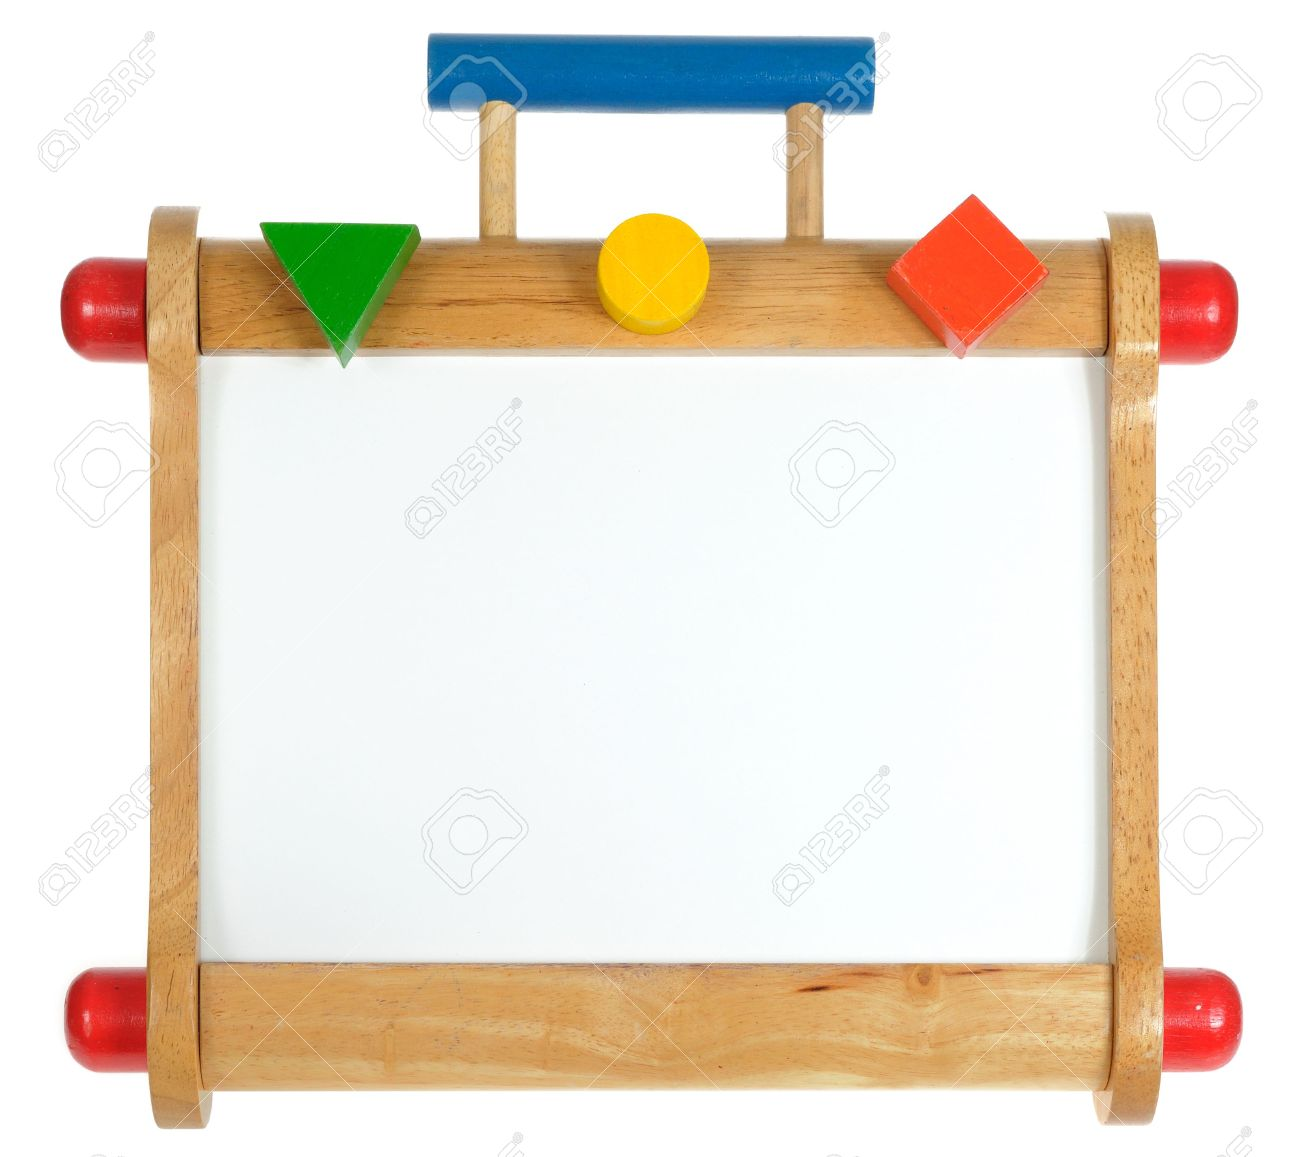 Blank Colorful Wooden Whiteboard On White Background Stock Photo 1300x1157